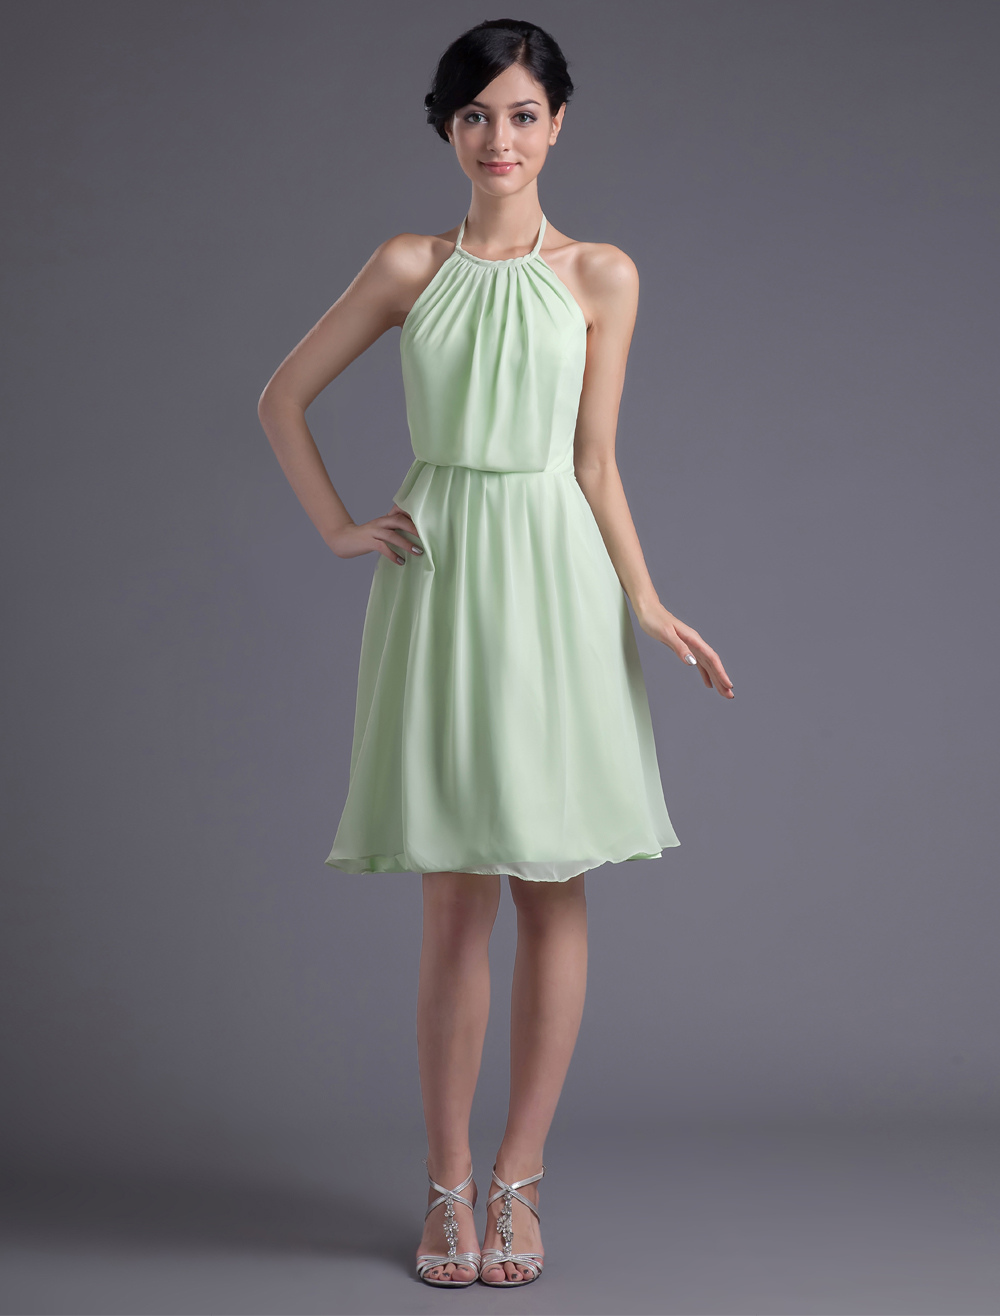 Short Bridesmaid Dress Pastel Green Party Dress Halter A line Chiffon Backless Prom Dress